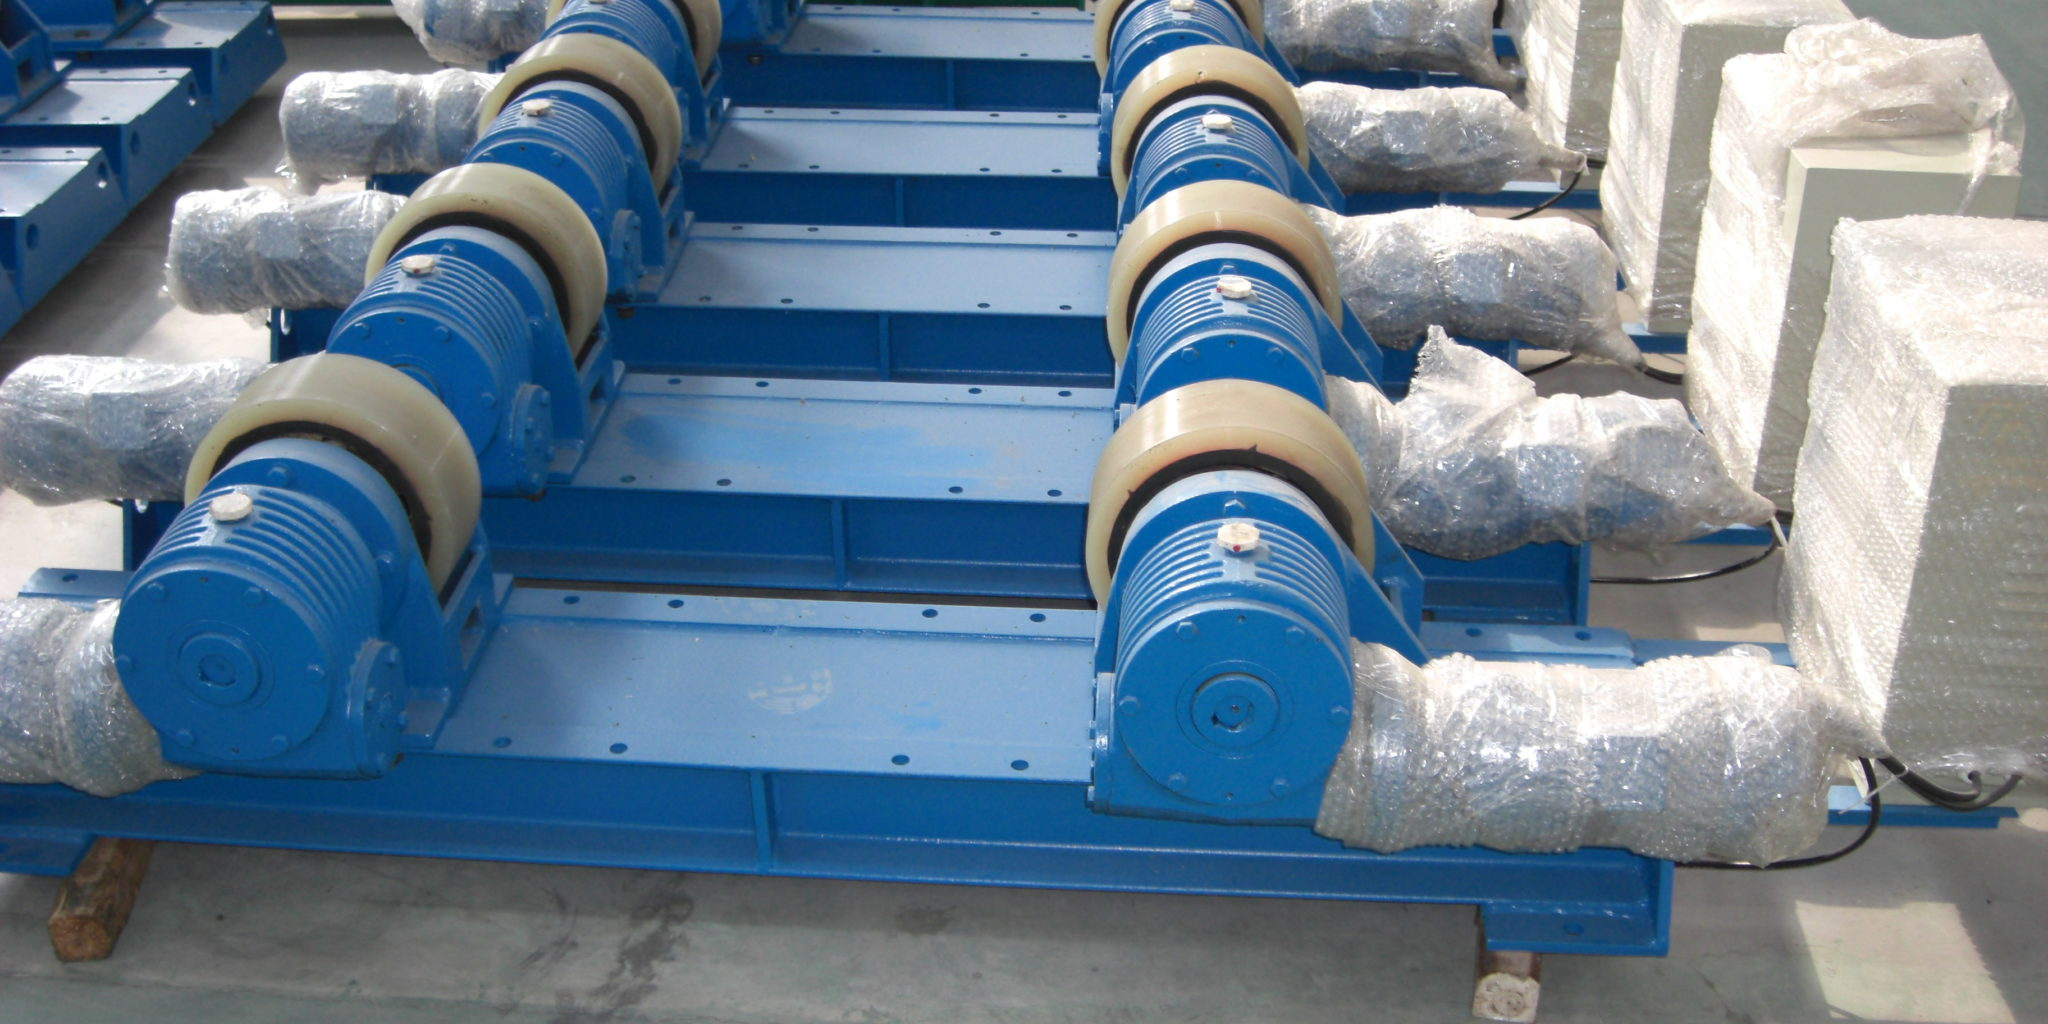 WR 10 tons conventional tank rotator